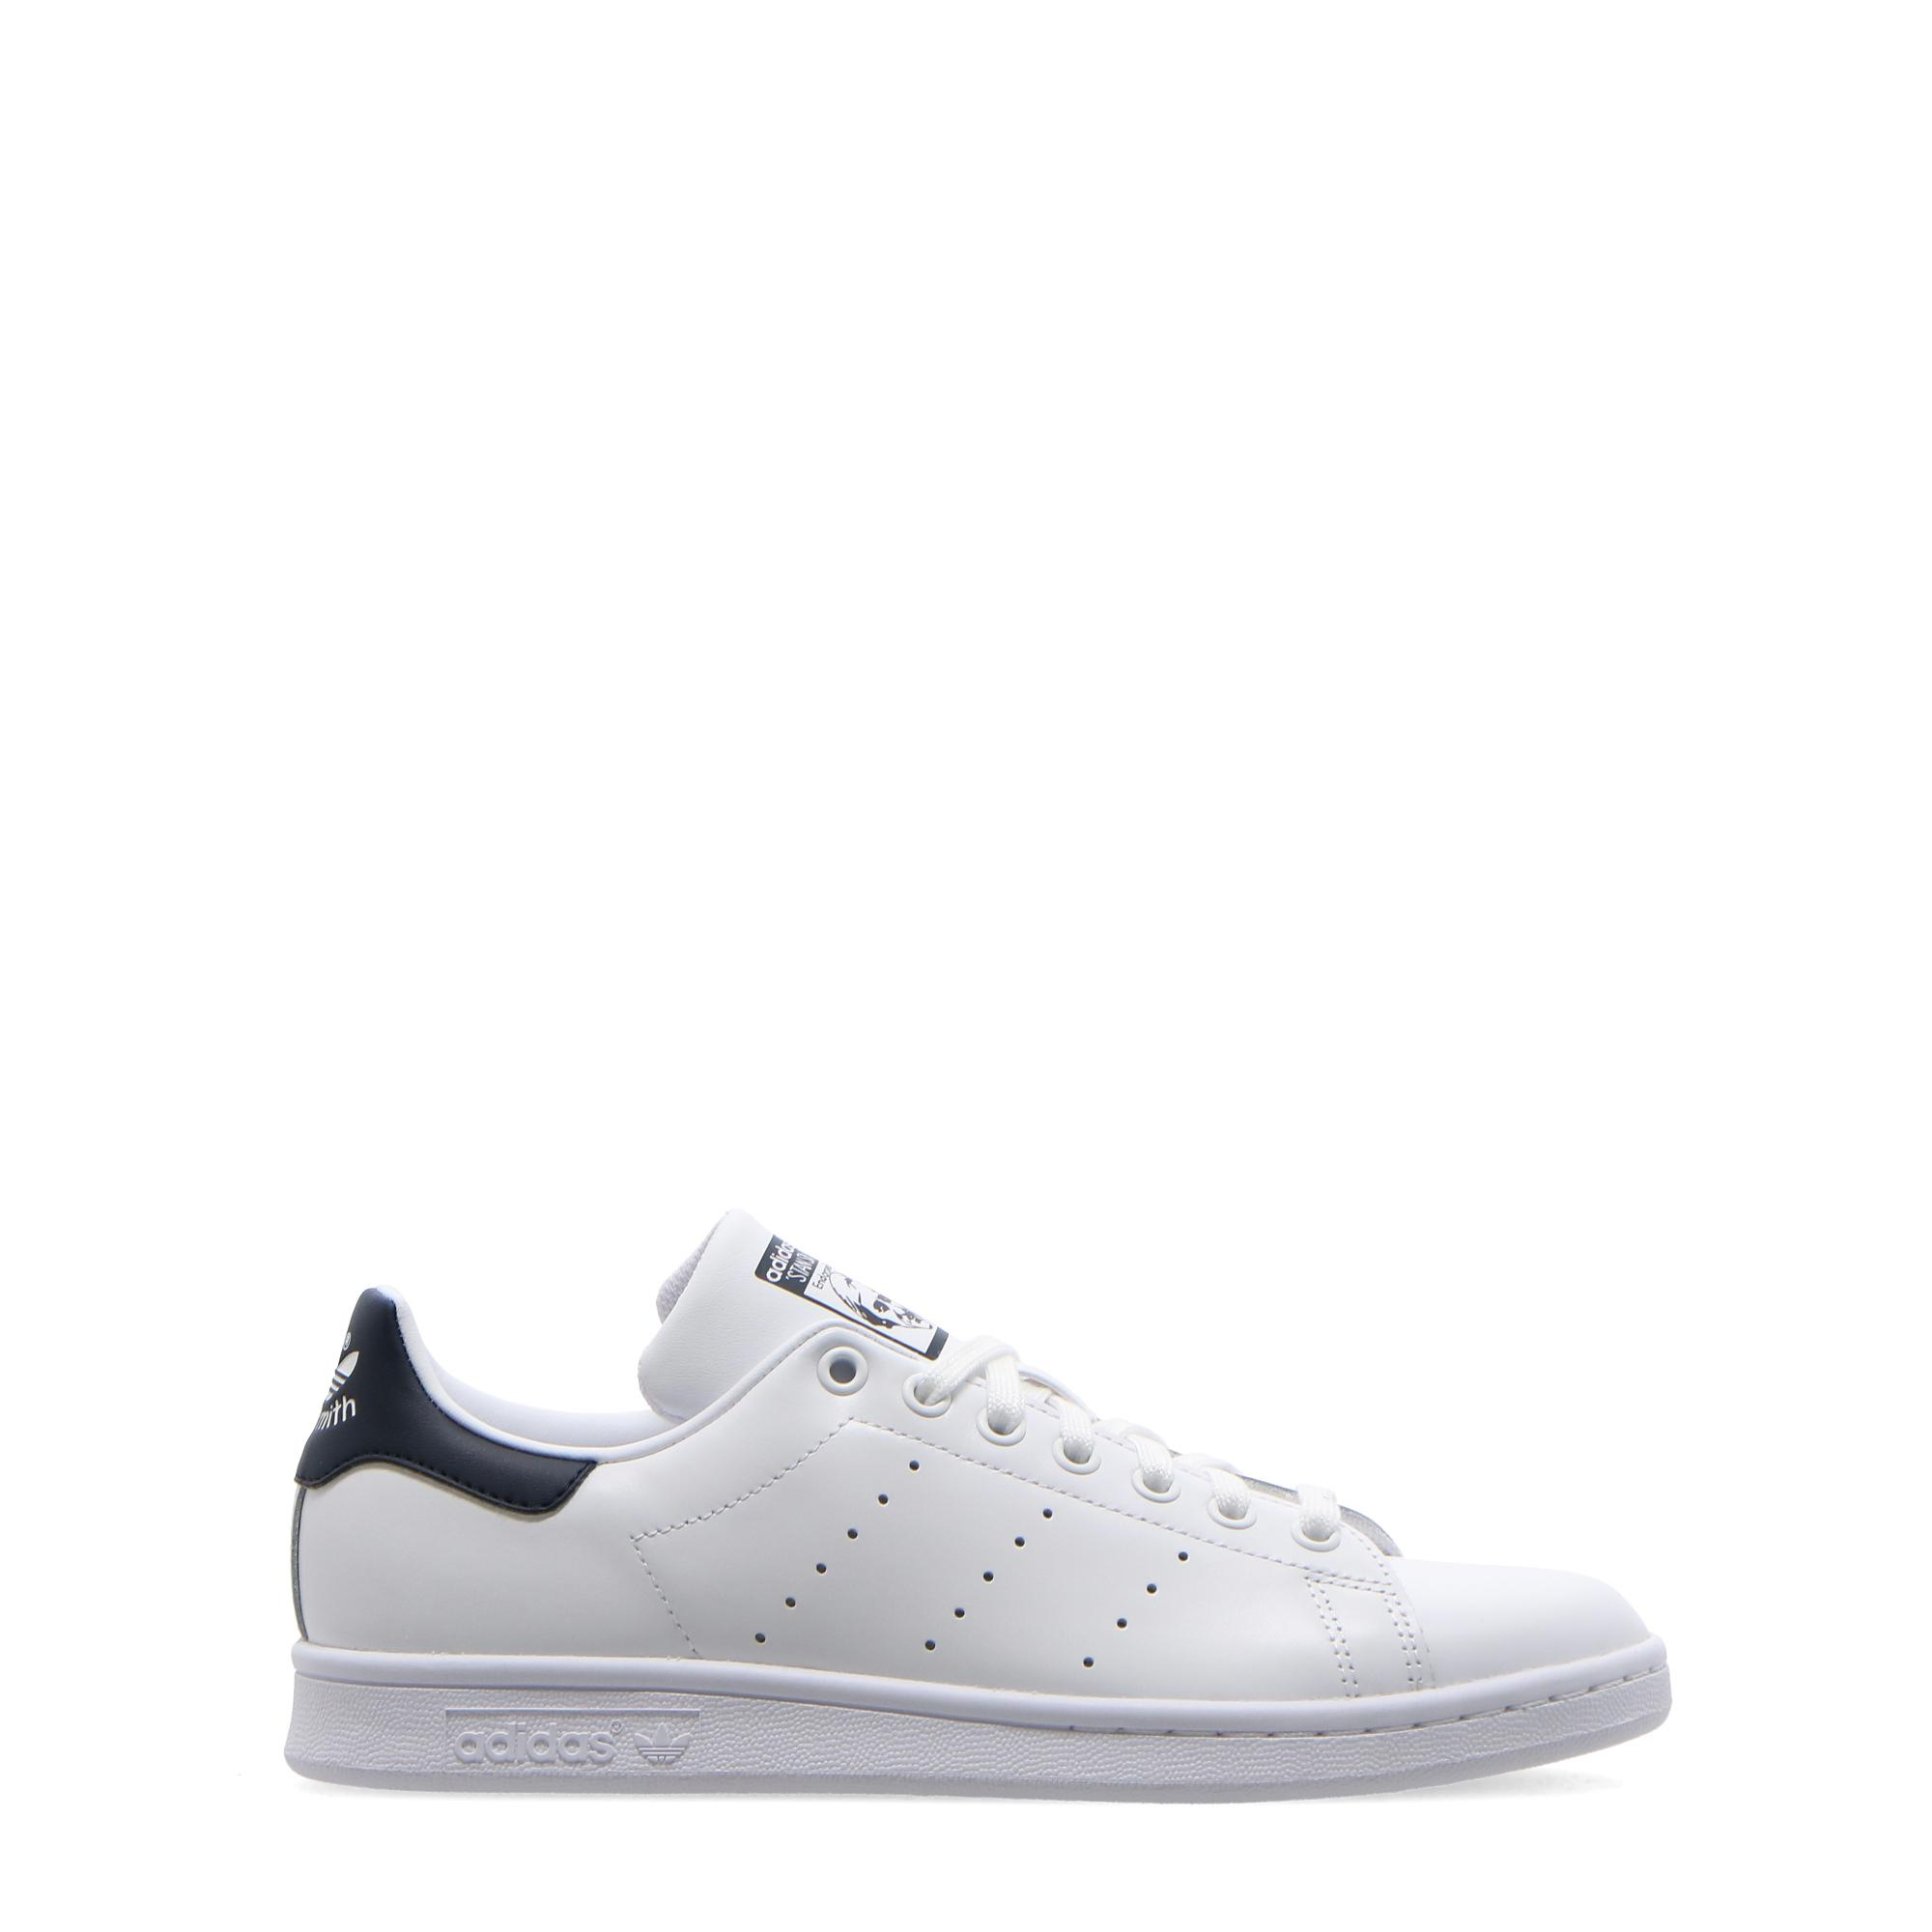 Adidas Stan Smith White new navy